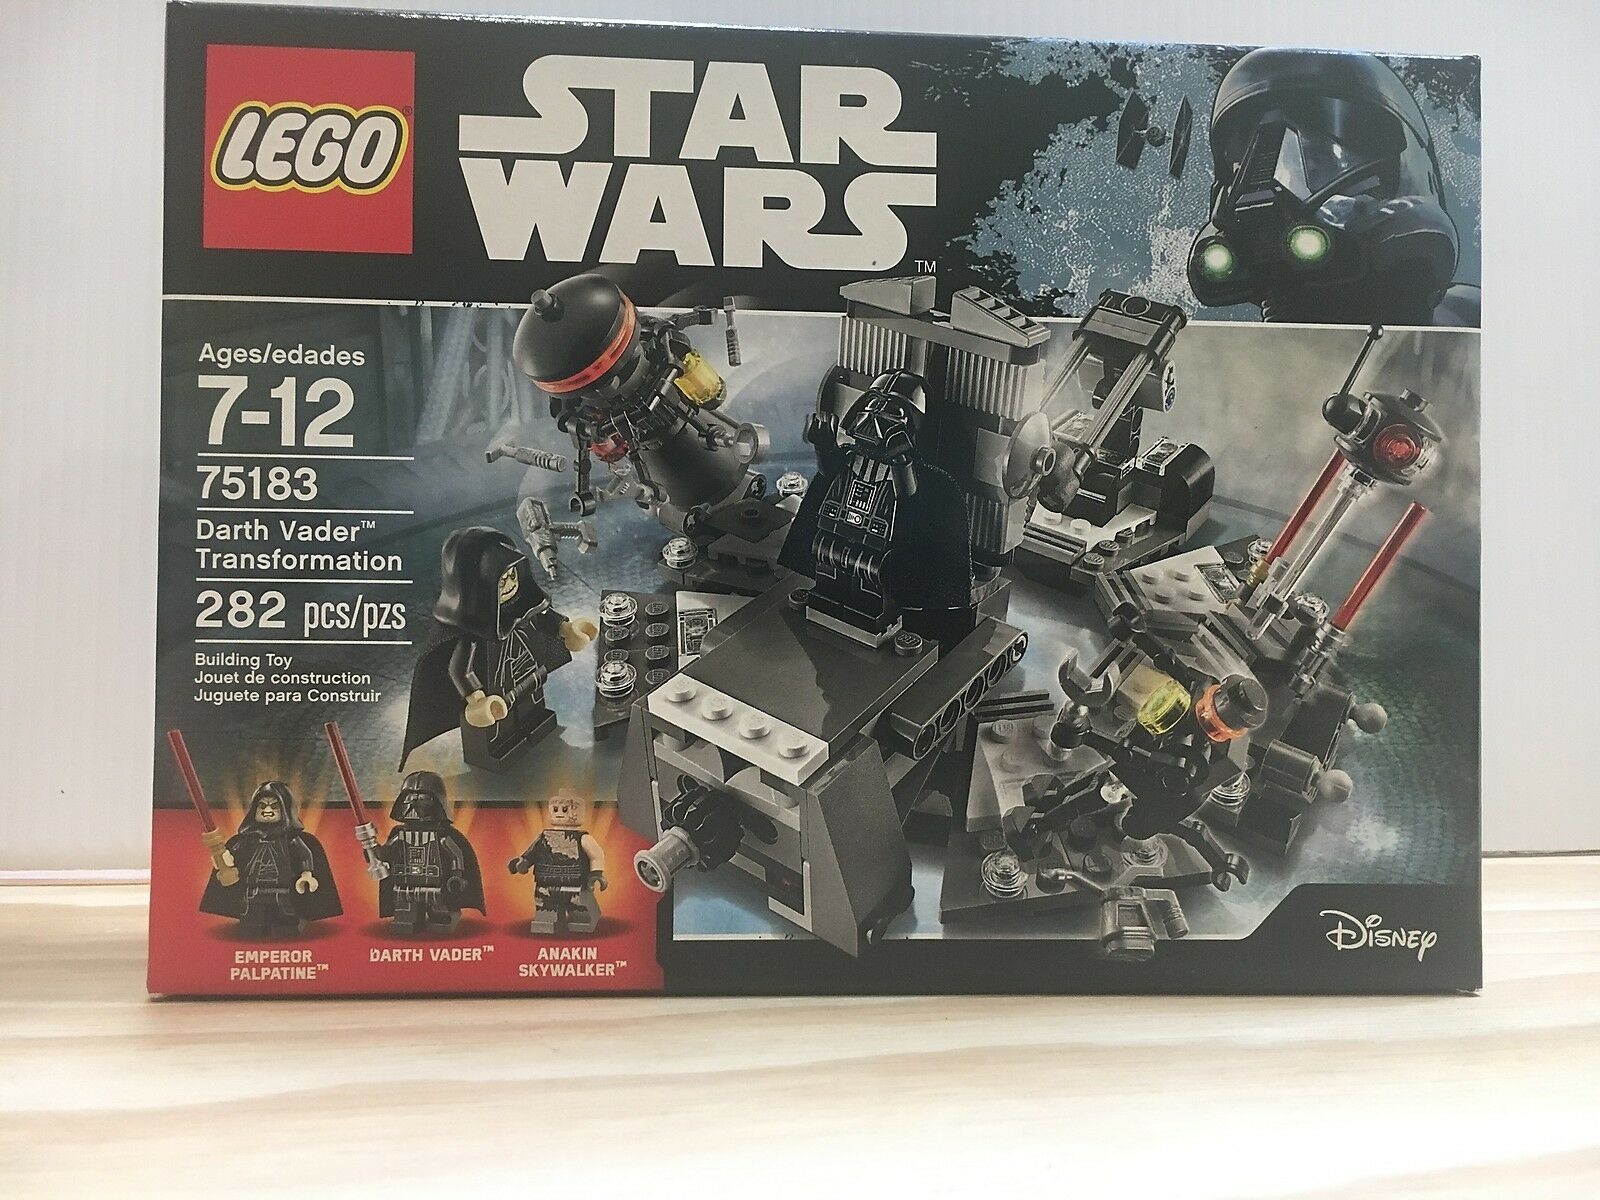 LEGO NIB 75183 Darth Vader Transformation Anakin Skywalker Emporer Palpatine